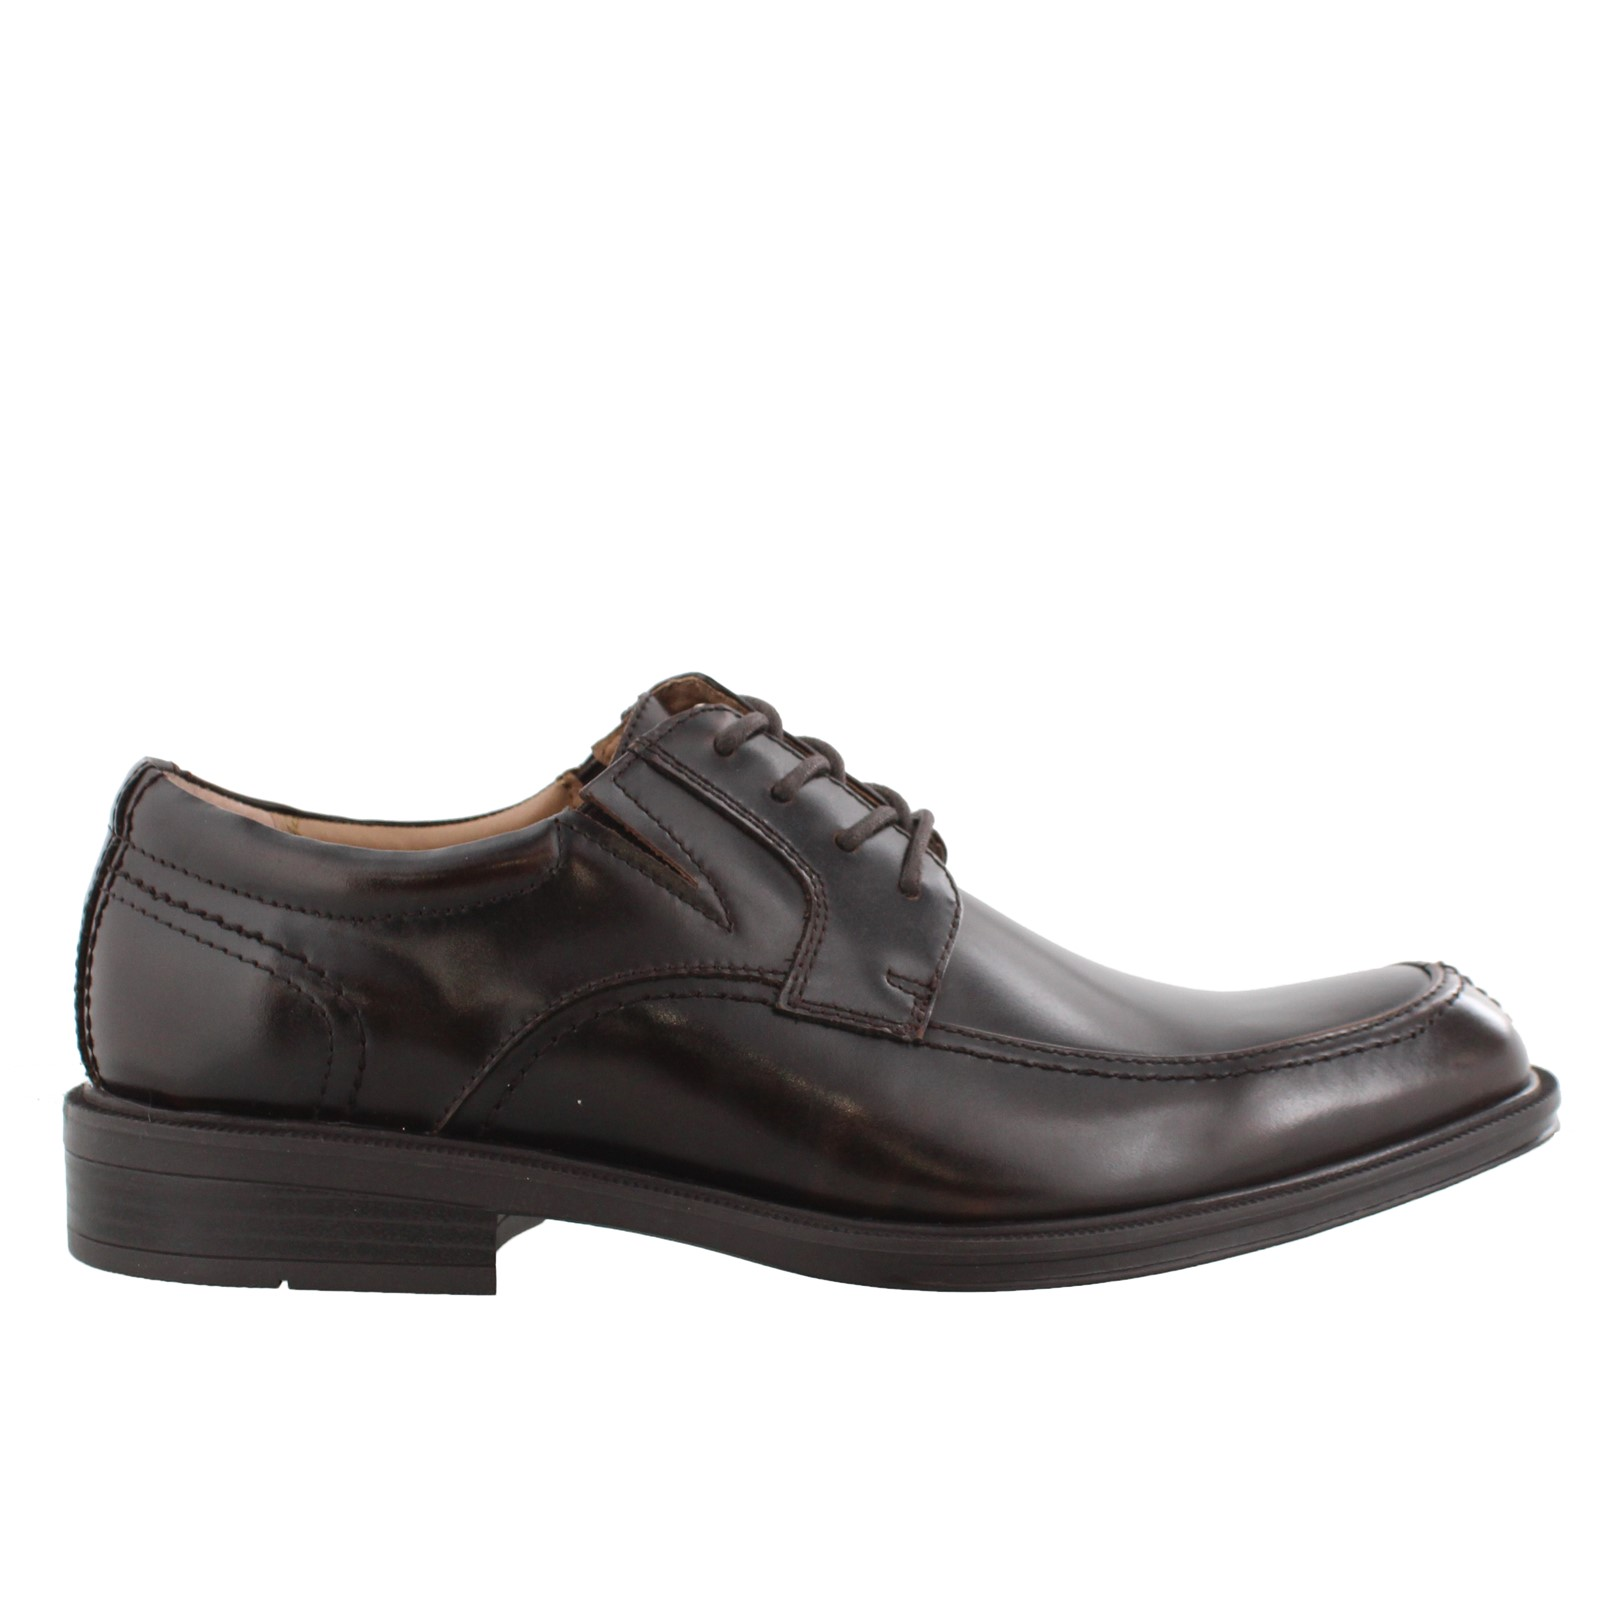 Men's Florsheim, Billings Oxfords